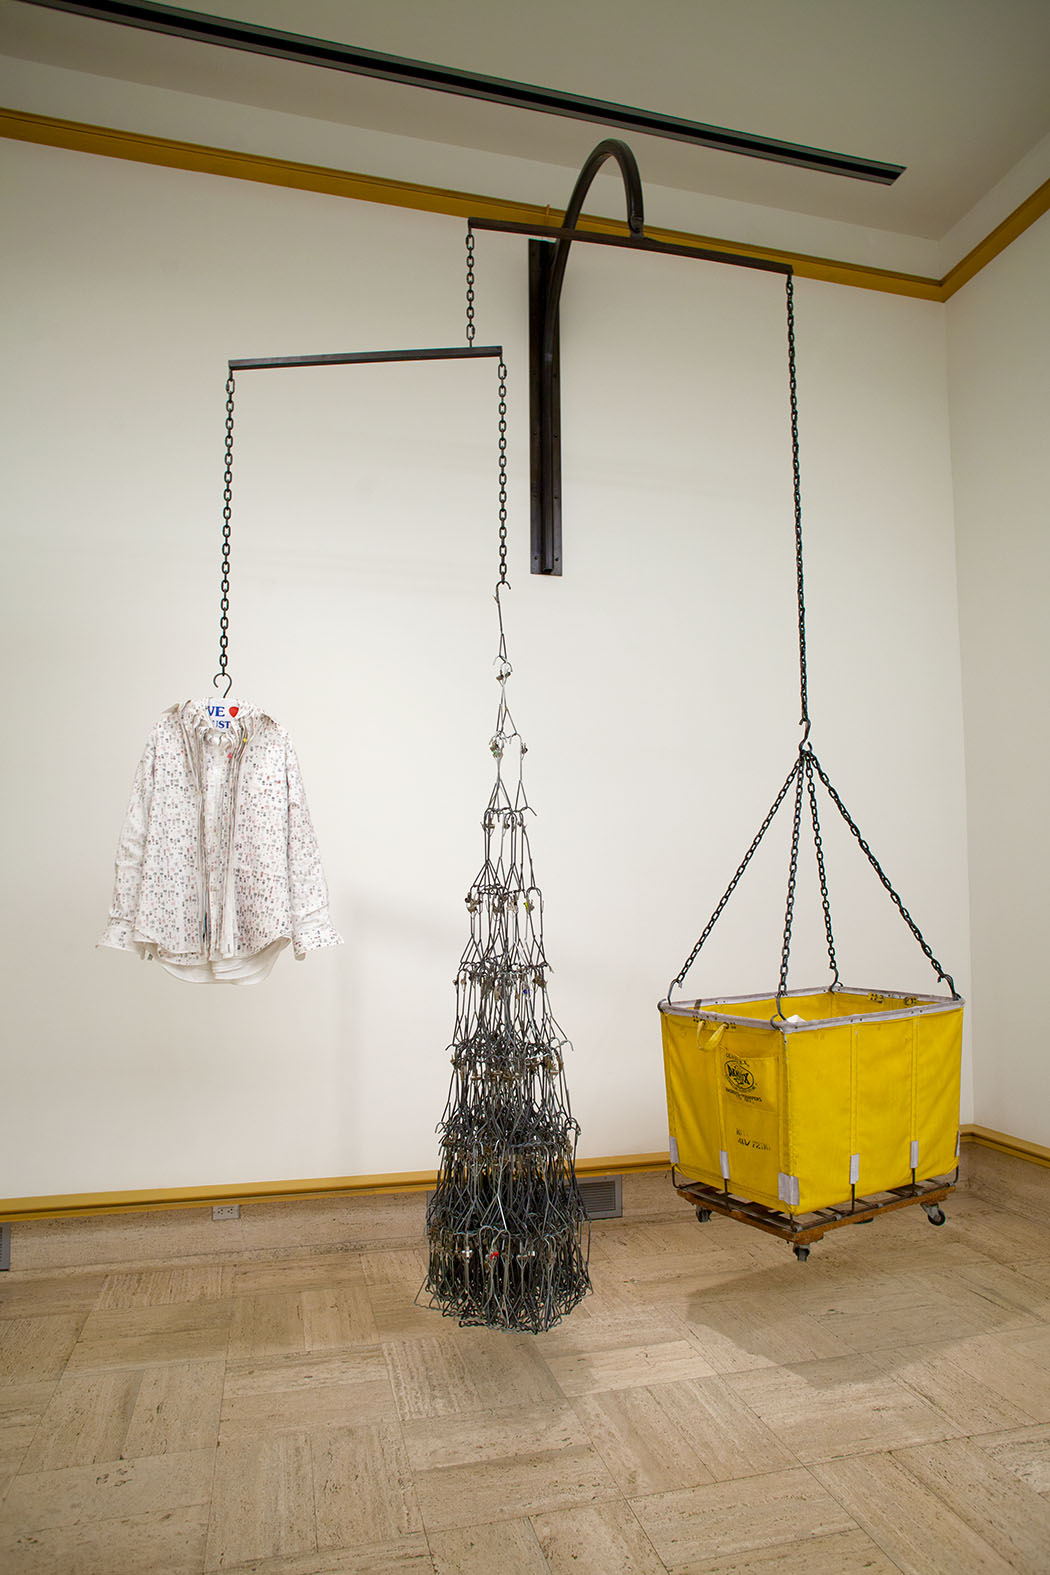 Untitled , Found Objects; Shirts, Hangers, Chains, Steel, Cart  Dimensions Variable, 2013.